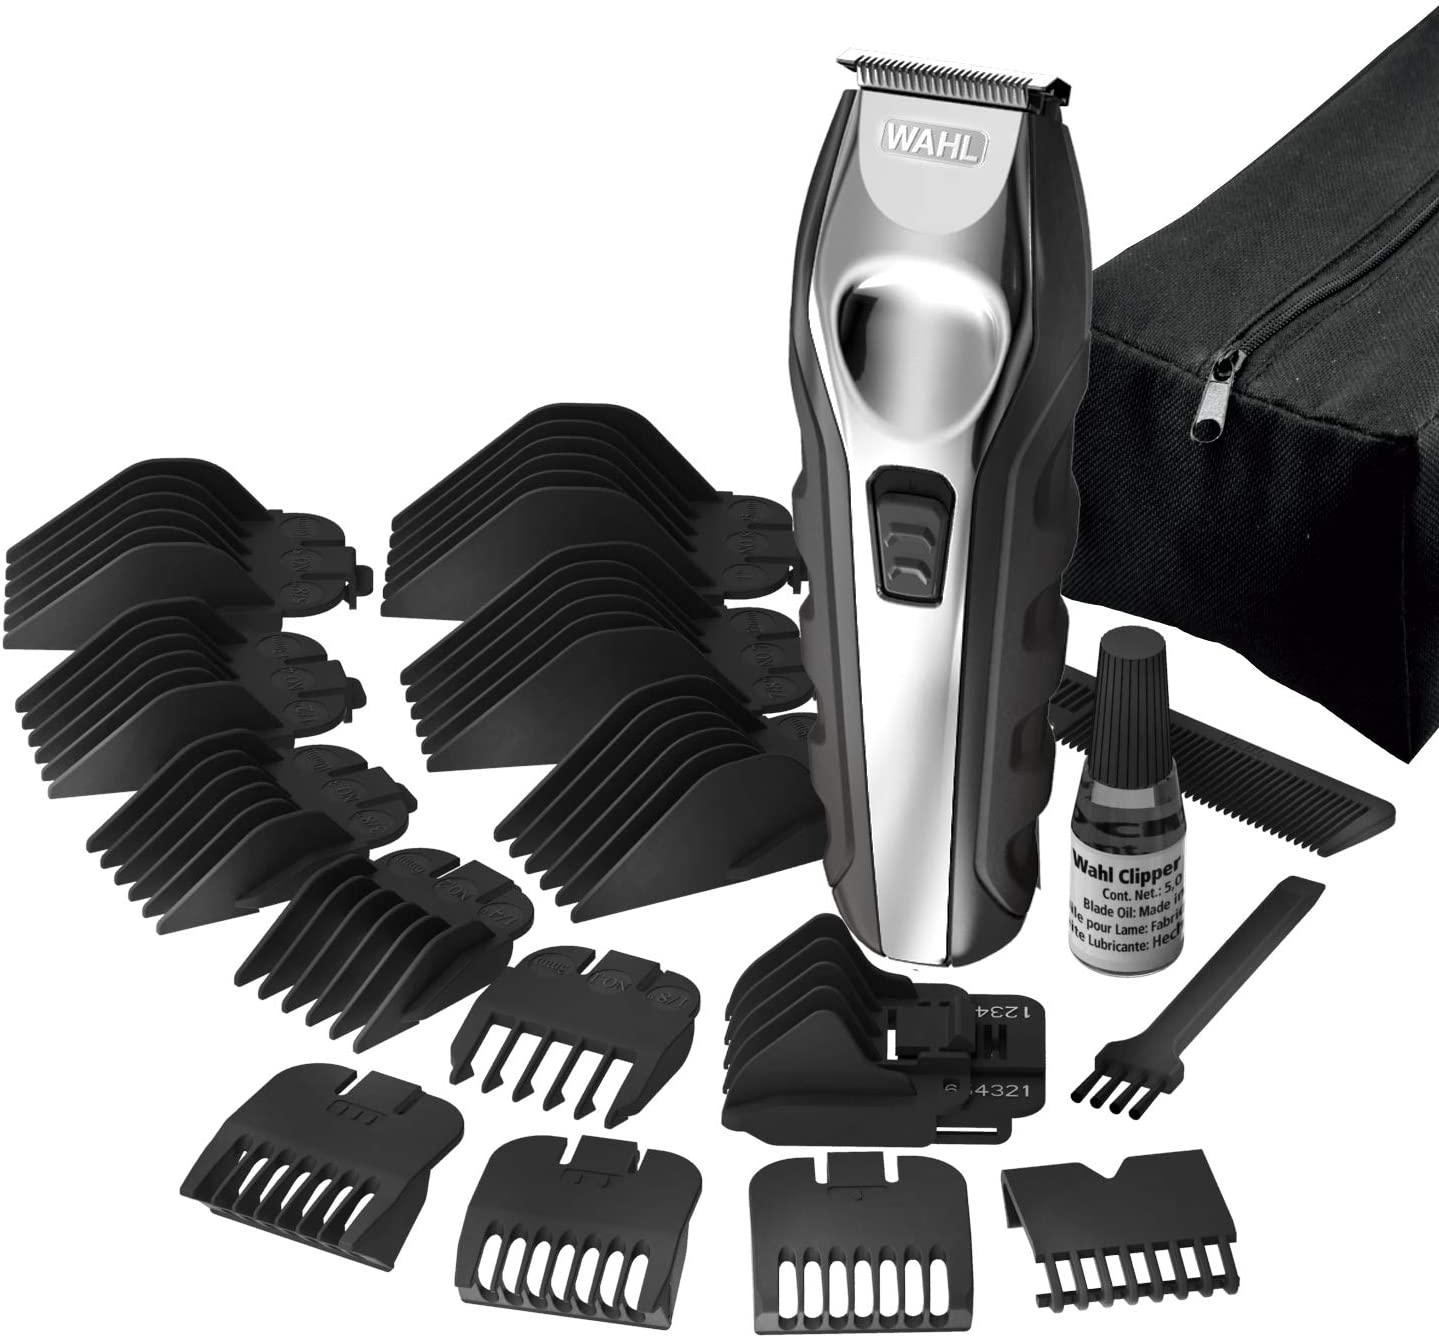 Wahl 9888-1227 All in One Lithium Ion Sport Ergo Grooming Kit, Steel Black